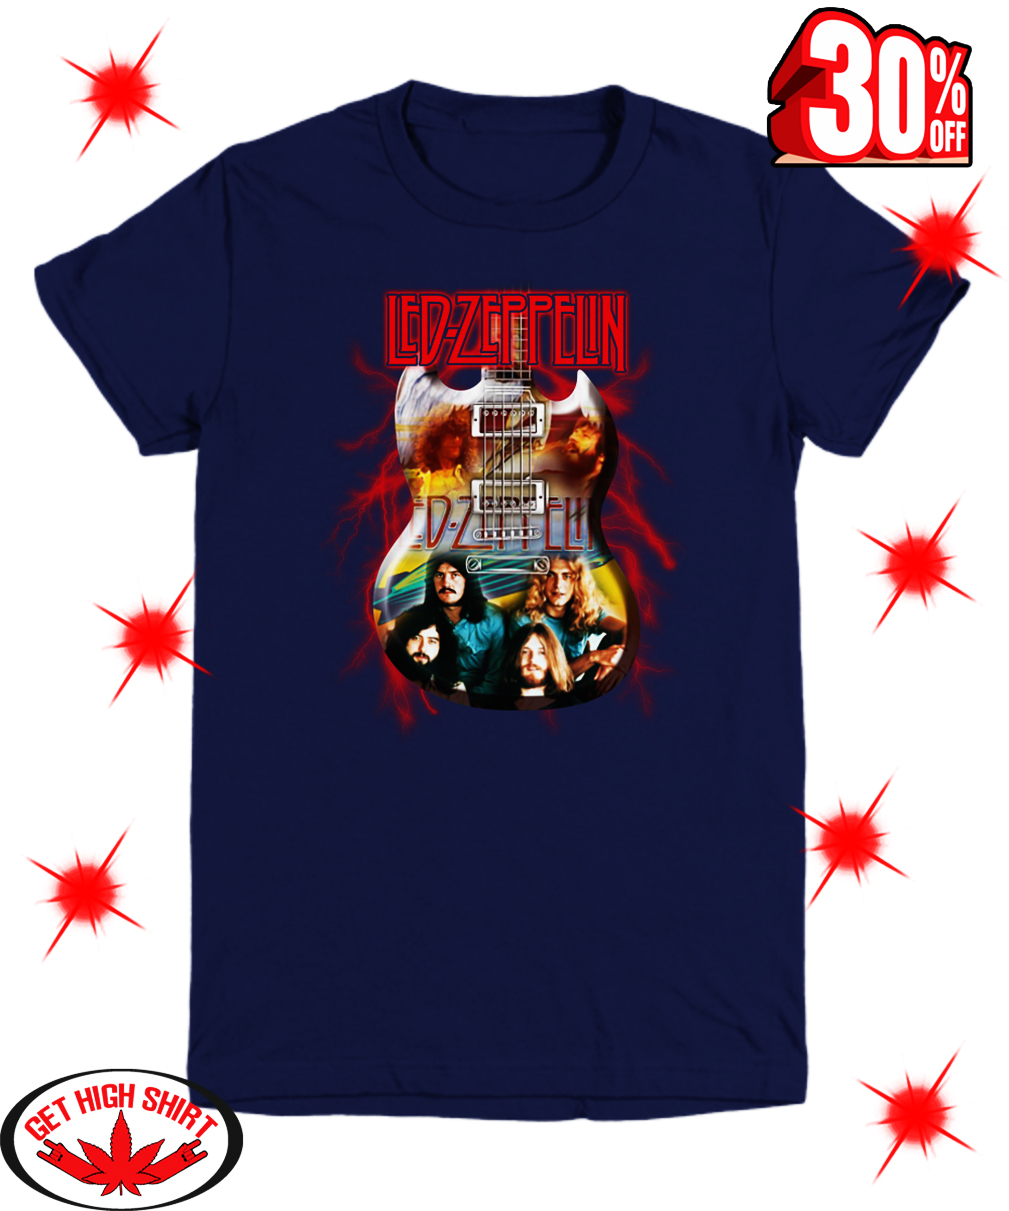 Guitar Led Zeppelin youth tee